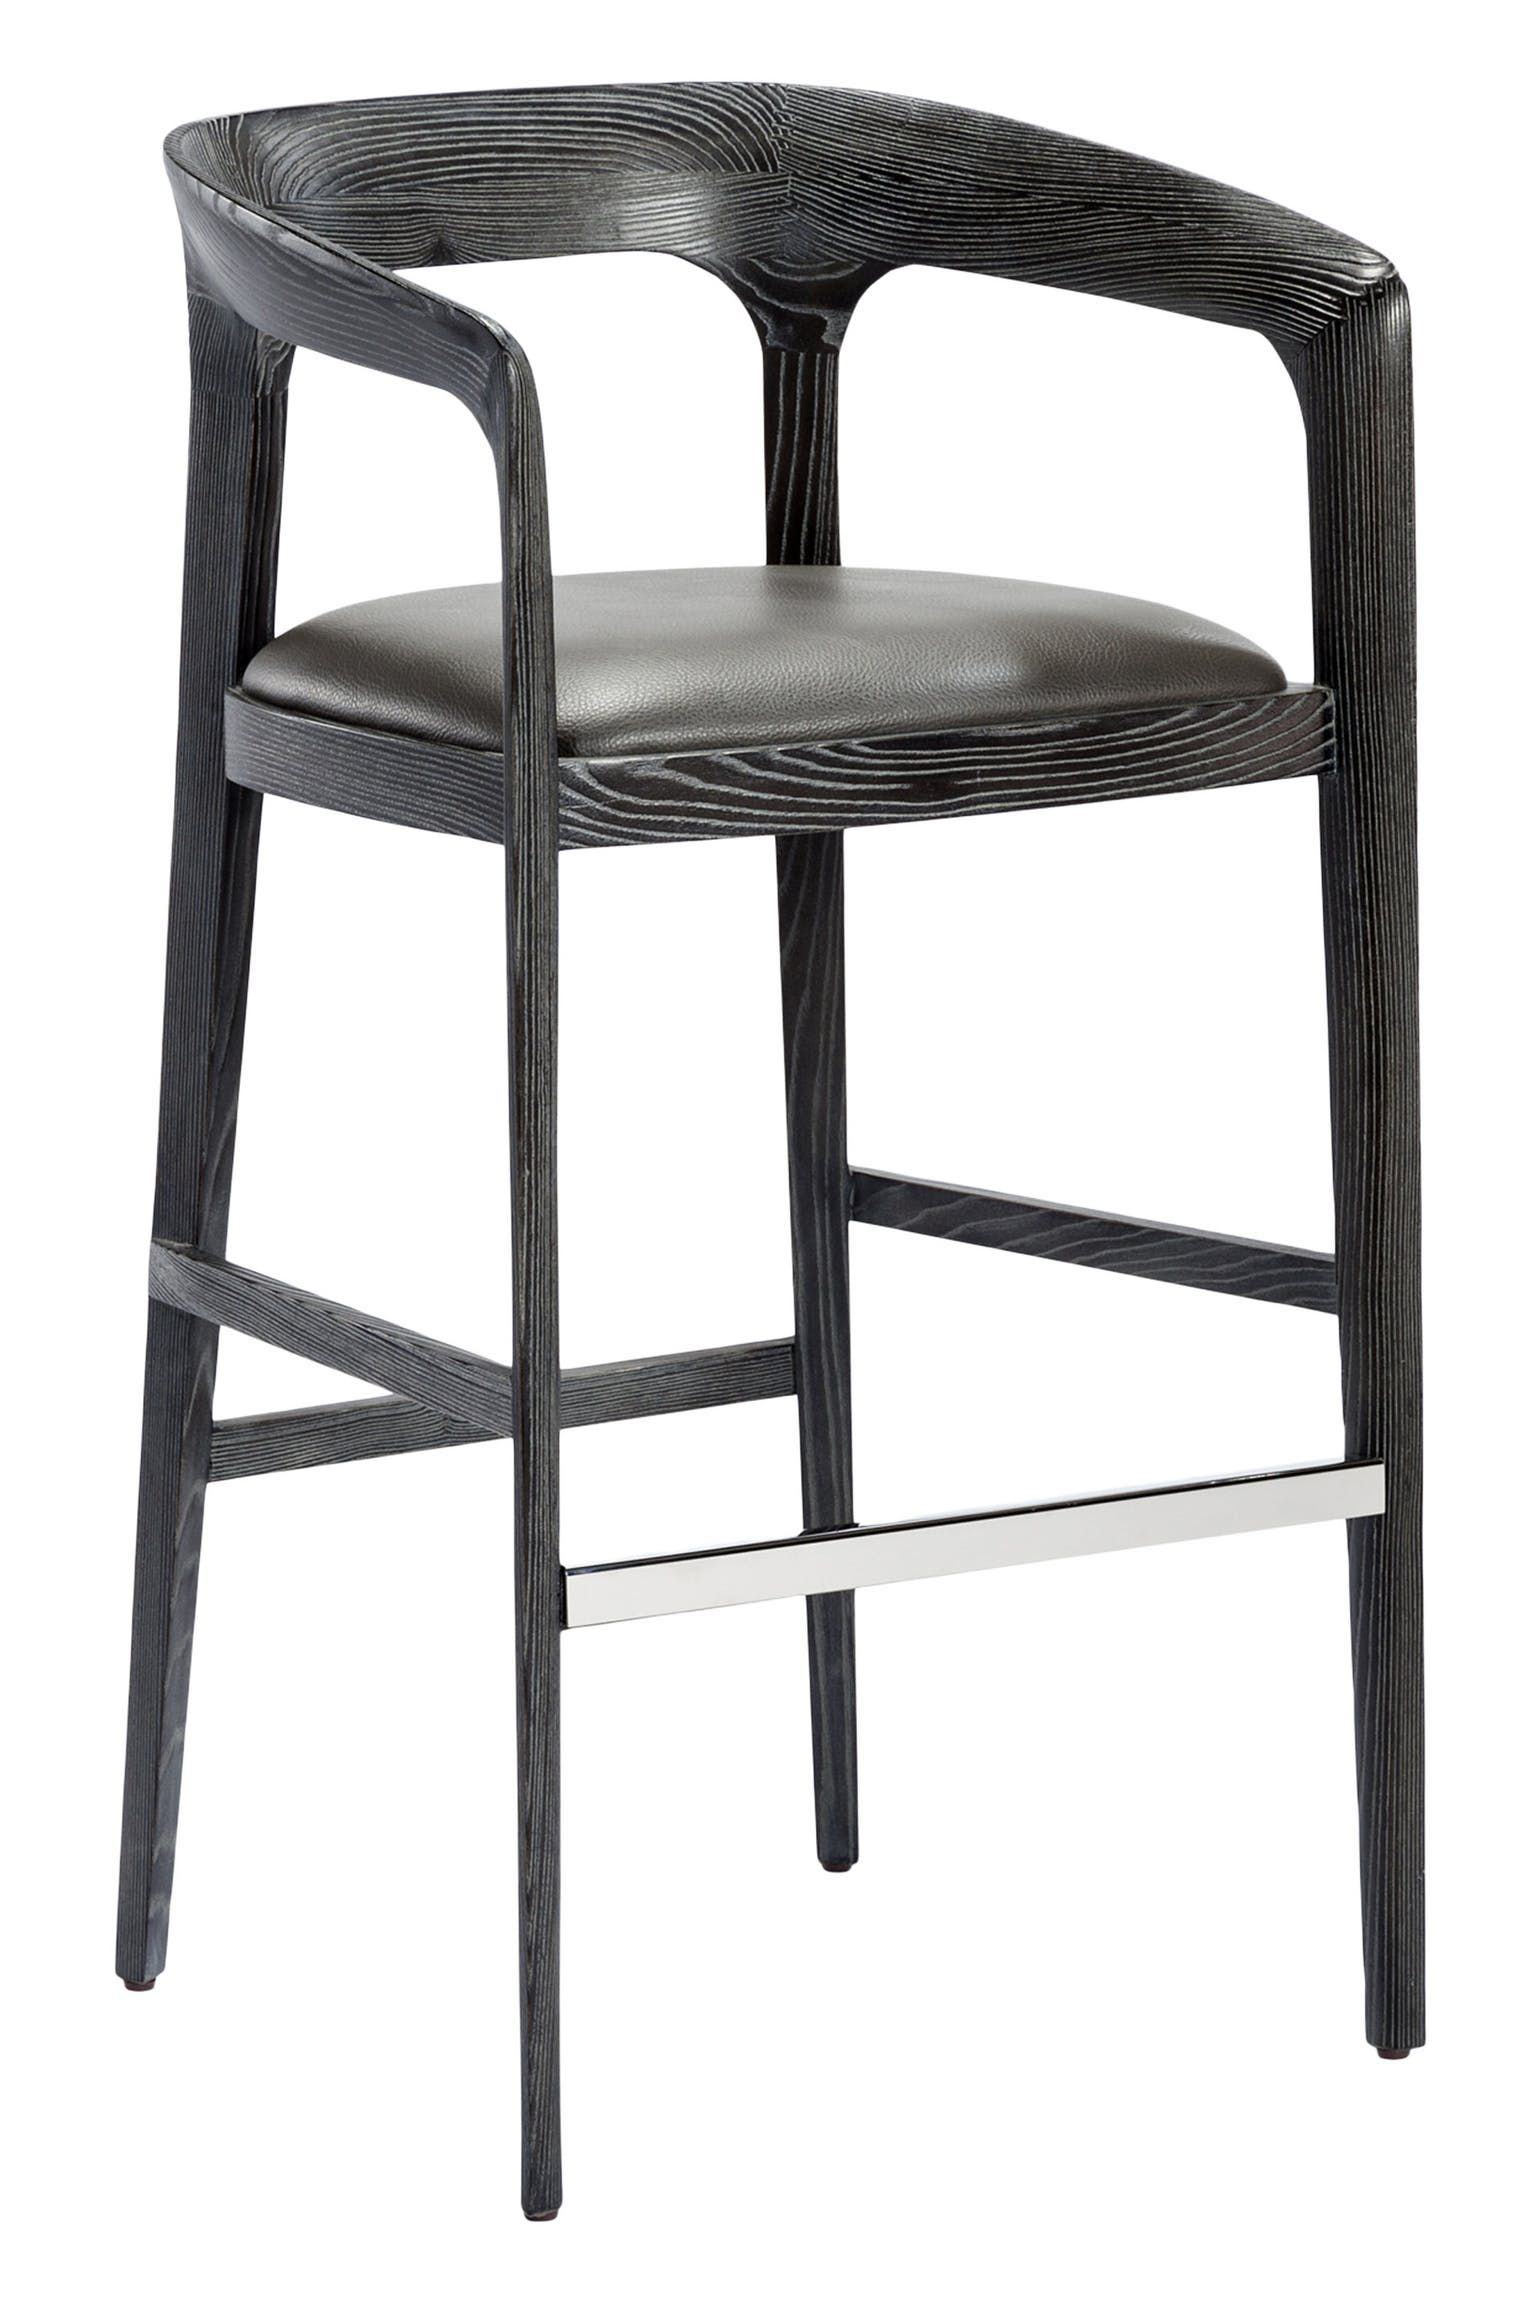 Kendra Bar Stool Grey Art Deco Contemporary Midcentury Modern Transitional Leather Upholstery Fabric Wood Luxury Chairs Modern Home Bar Modern Bar Stools